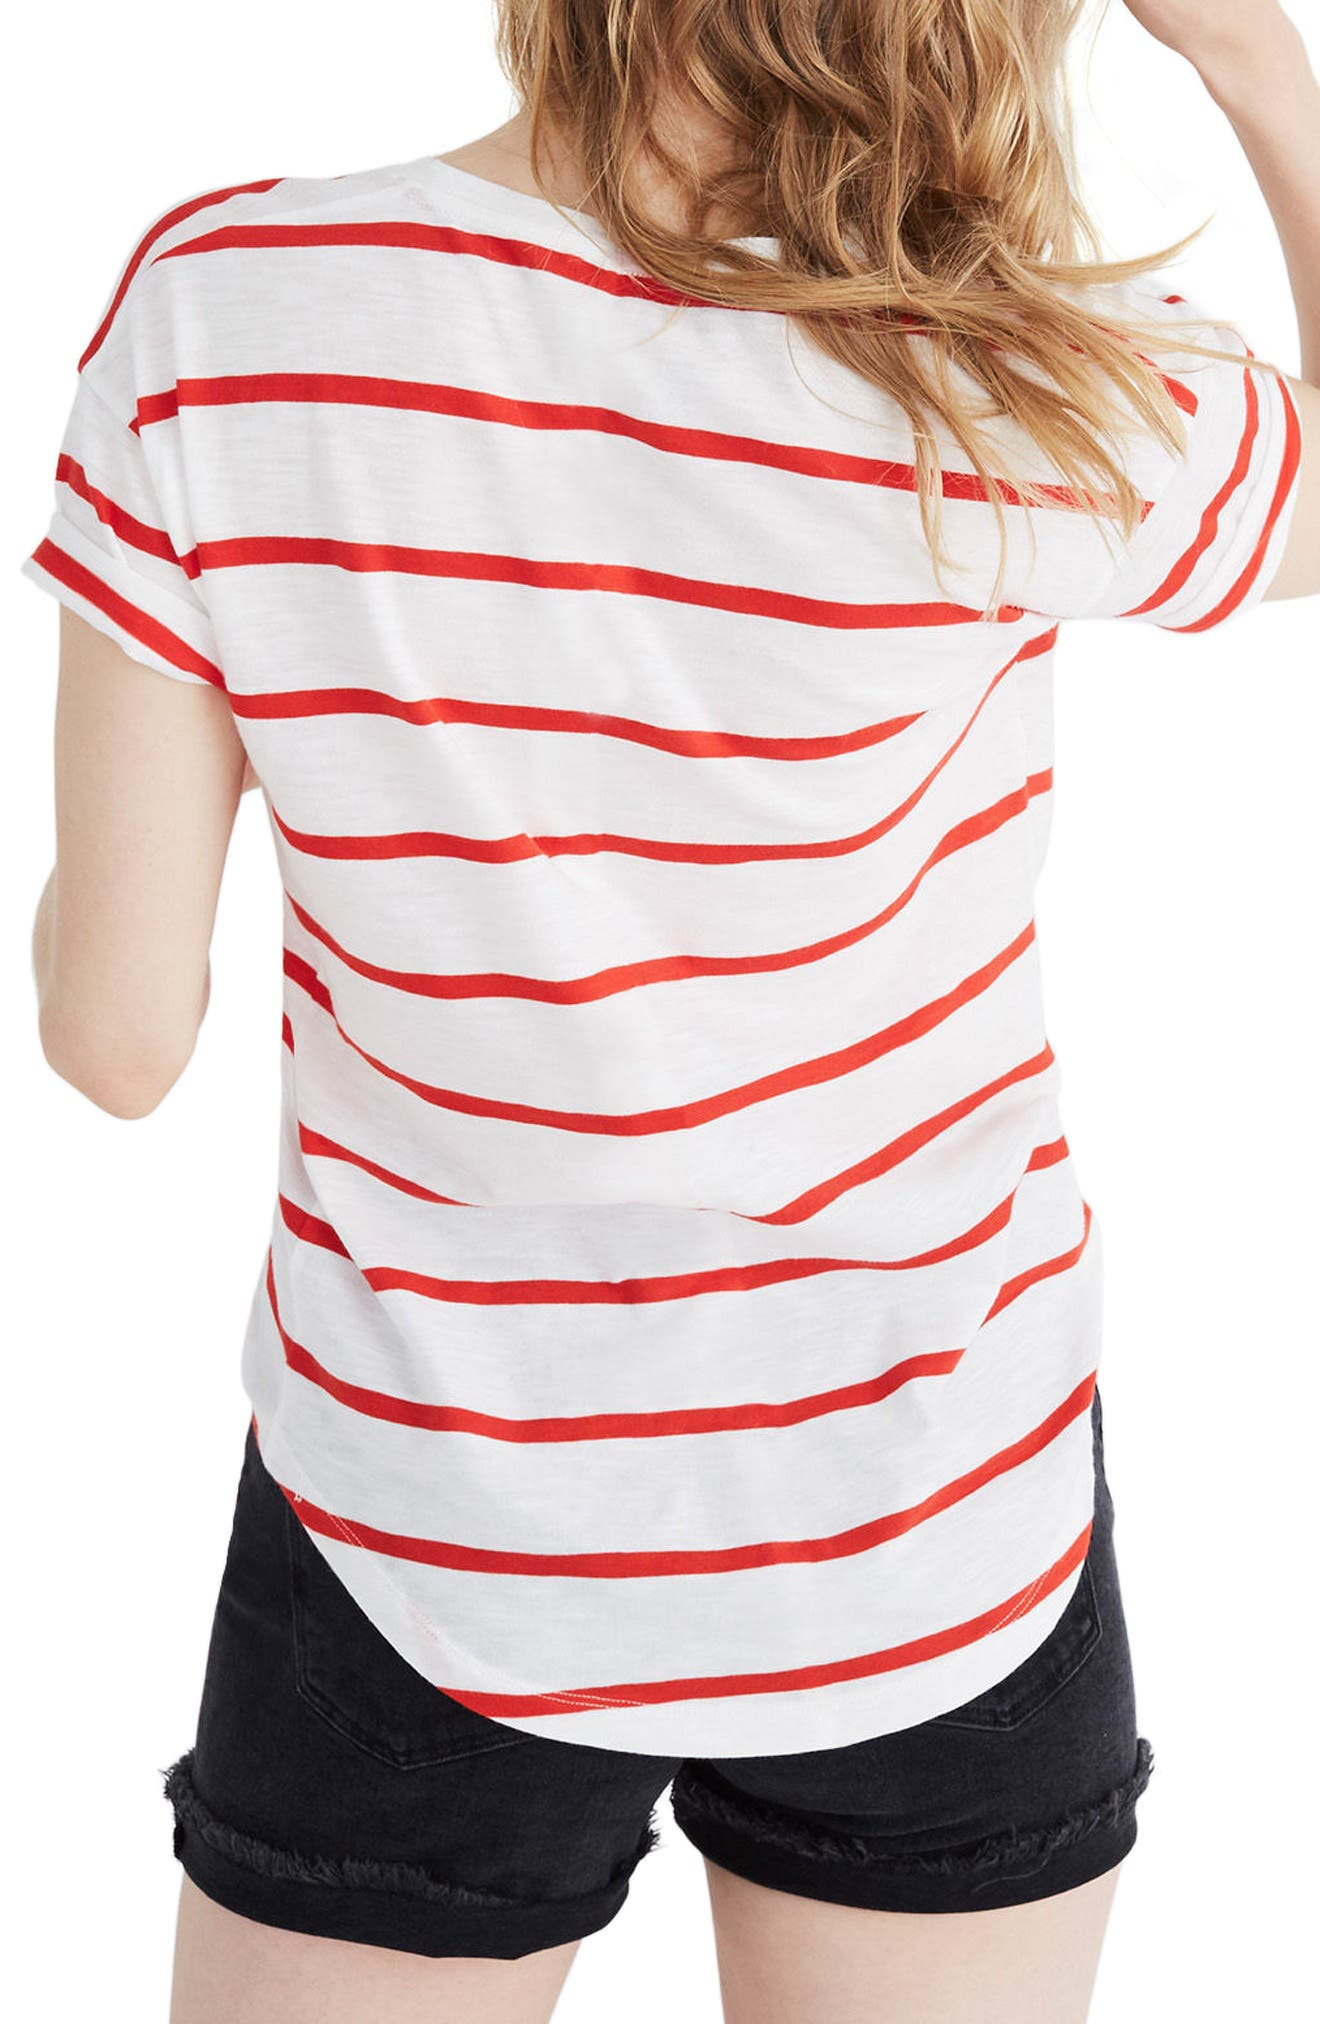 Whisper Cotton Crewneck Tee,                             Alternate thumbnail 2, color,                             BRIGHT IVORY/ RED